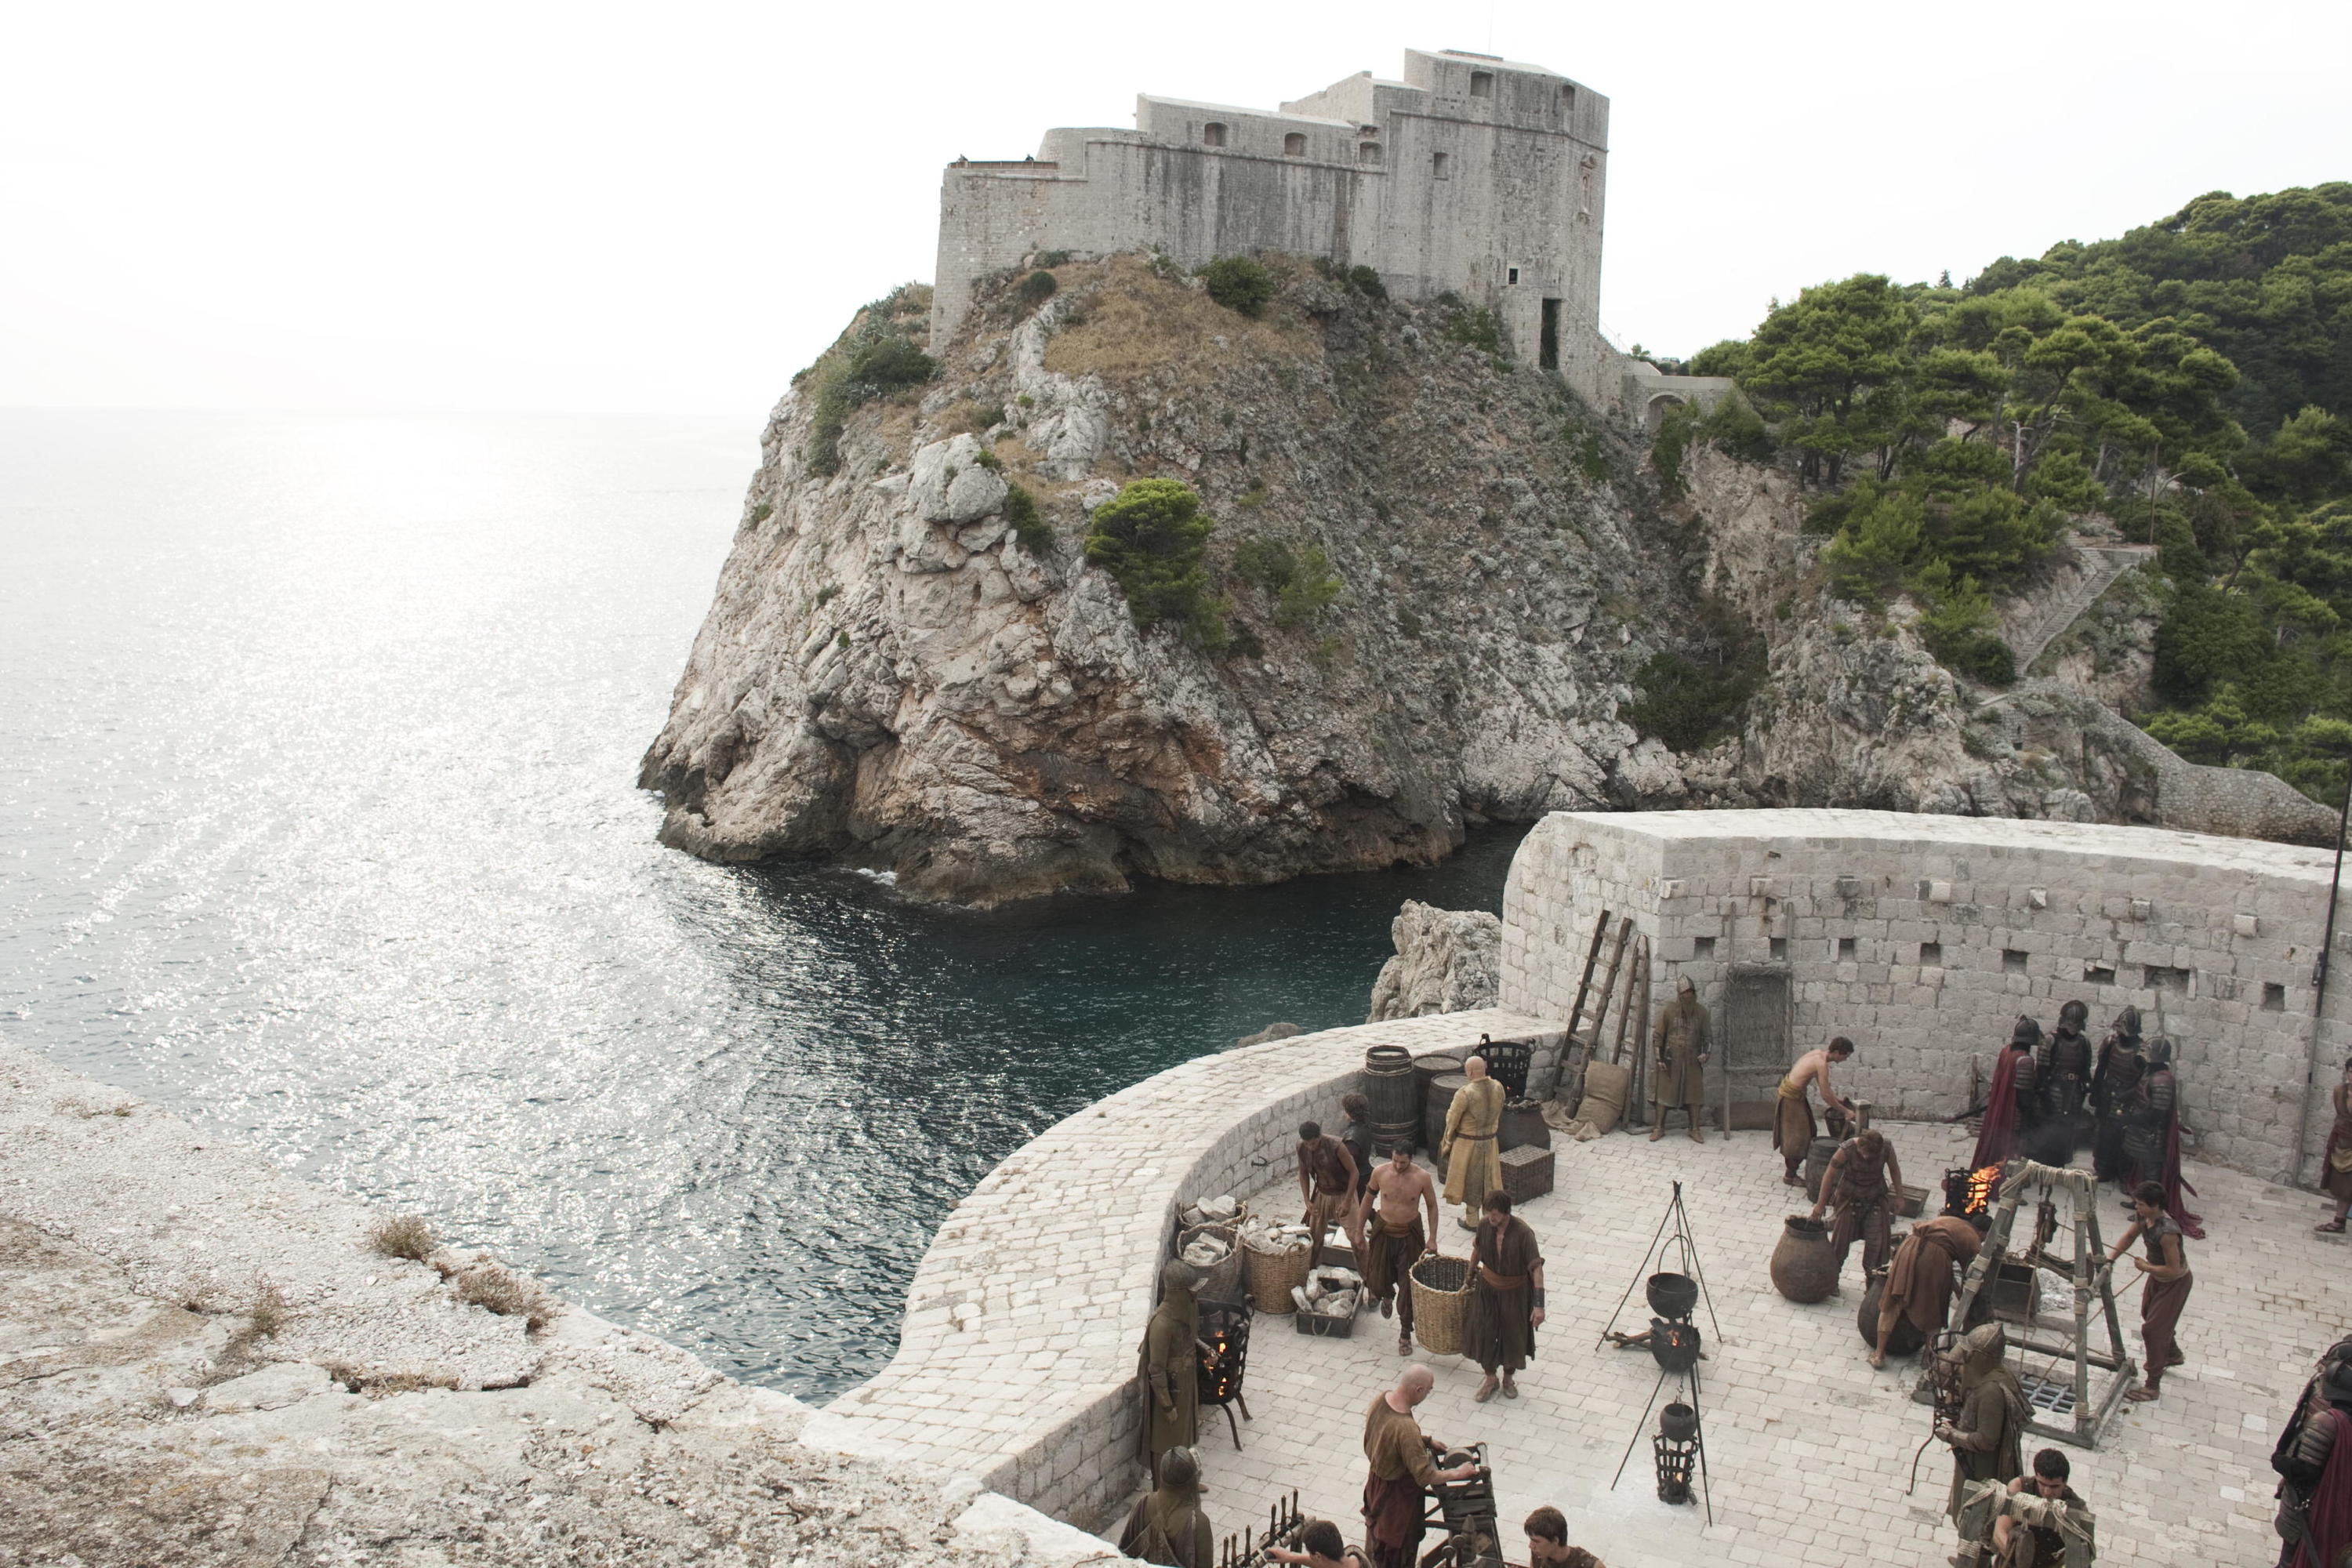 Game of Thrones guide to Croatia